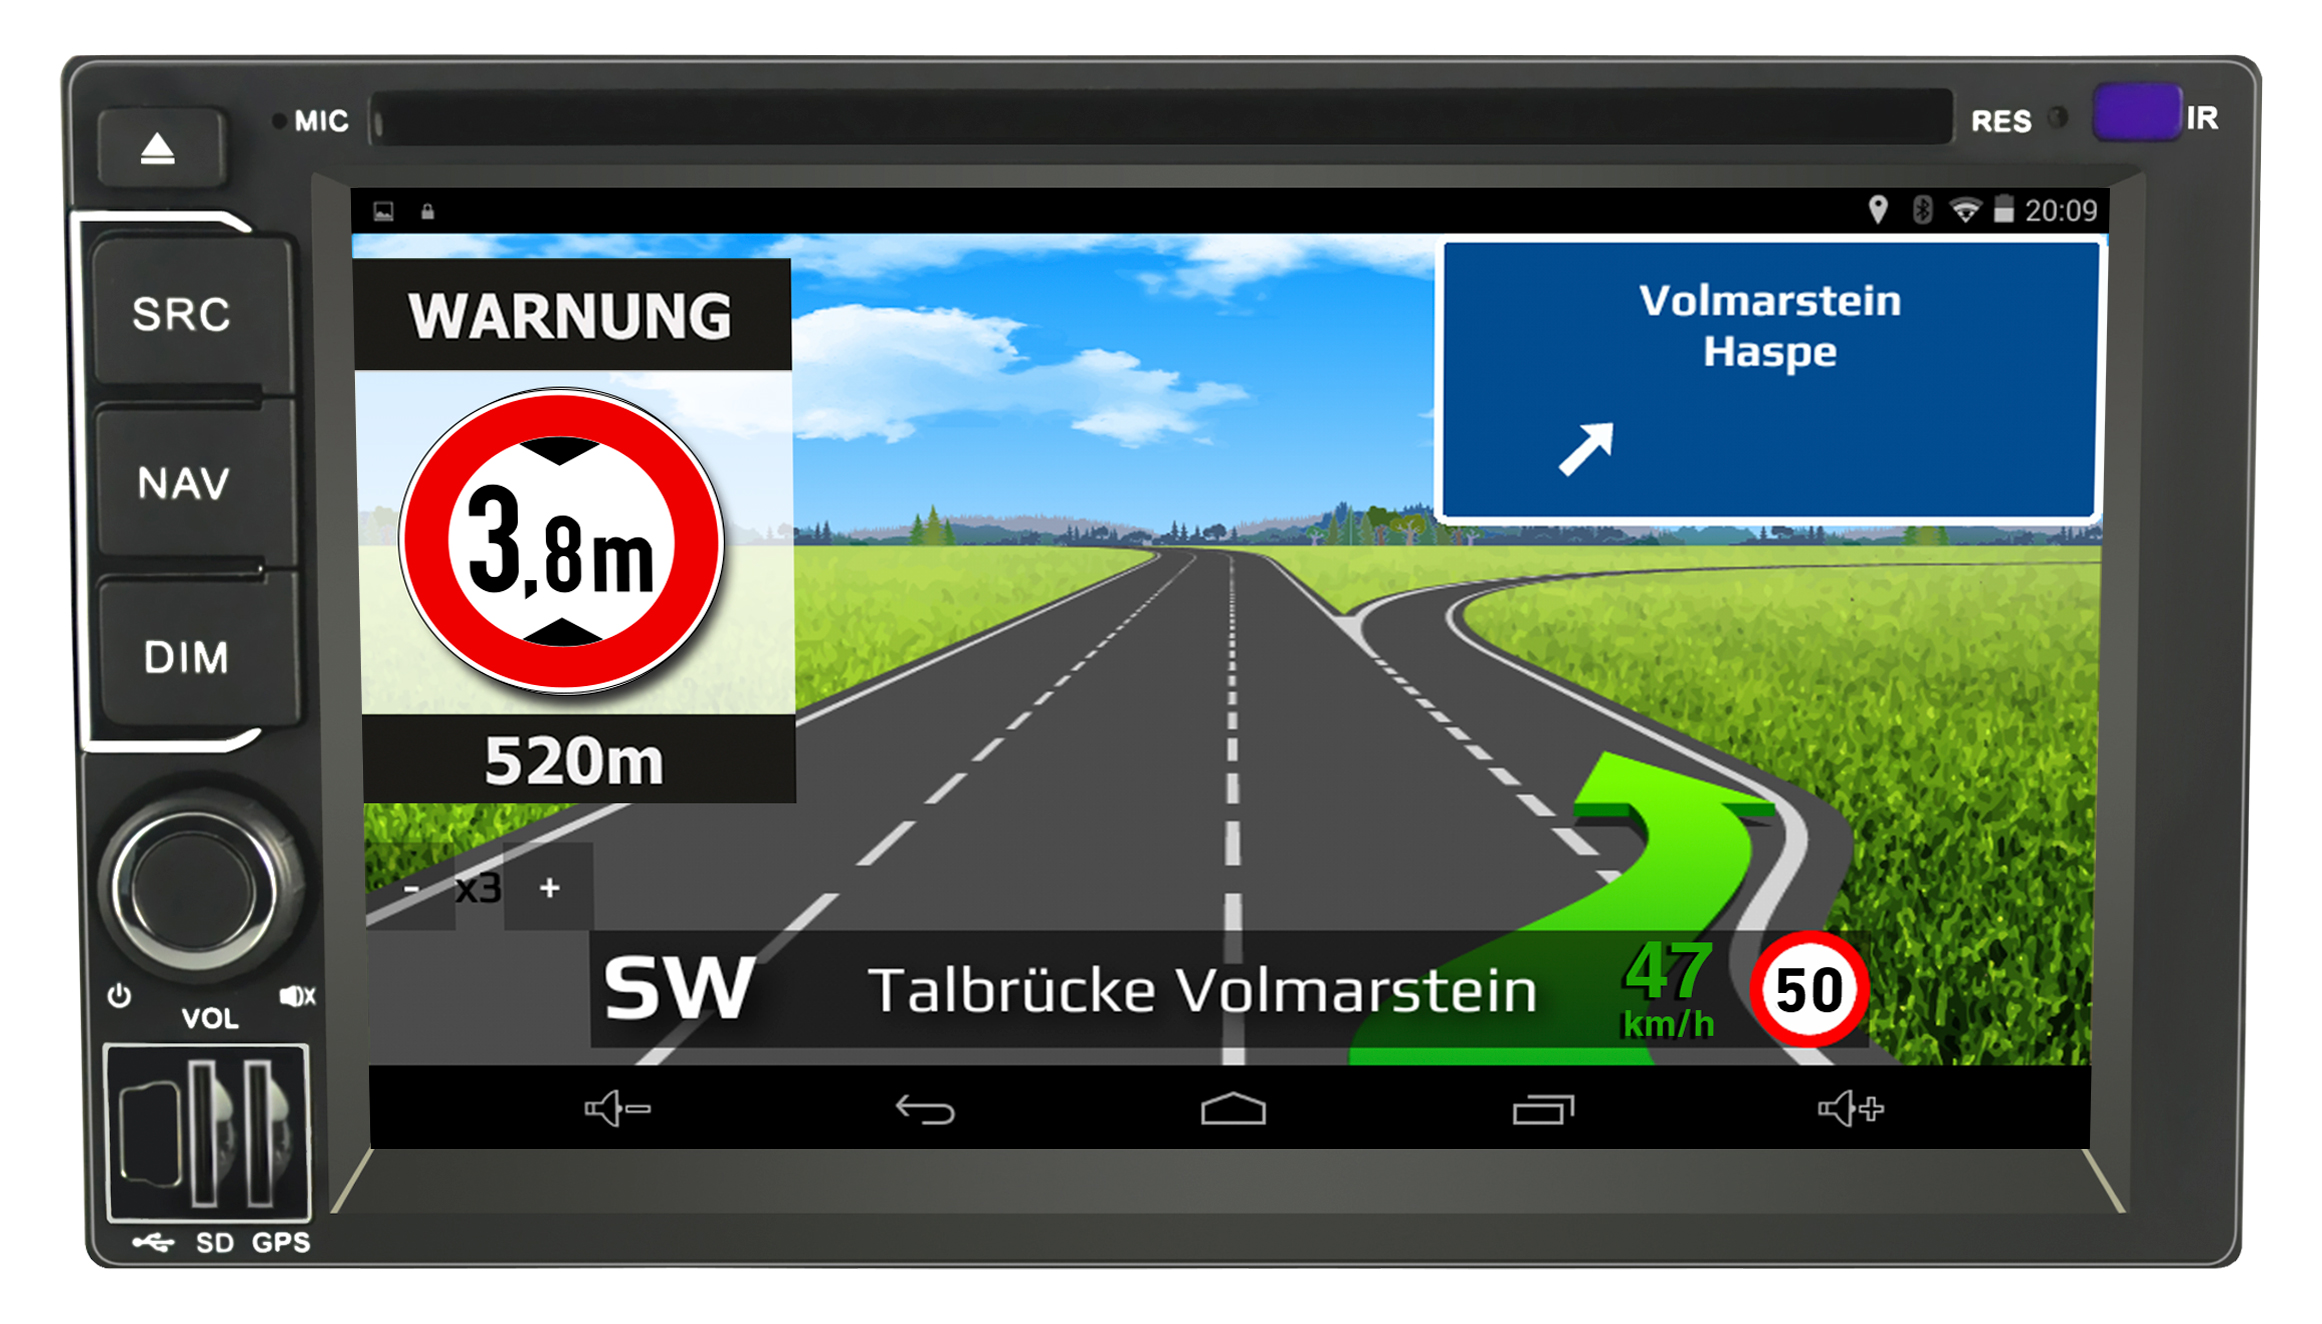 CAR GUARD IntelliRoute CA9100 DAB navigation system for mobile homes